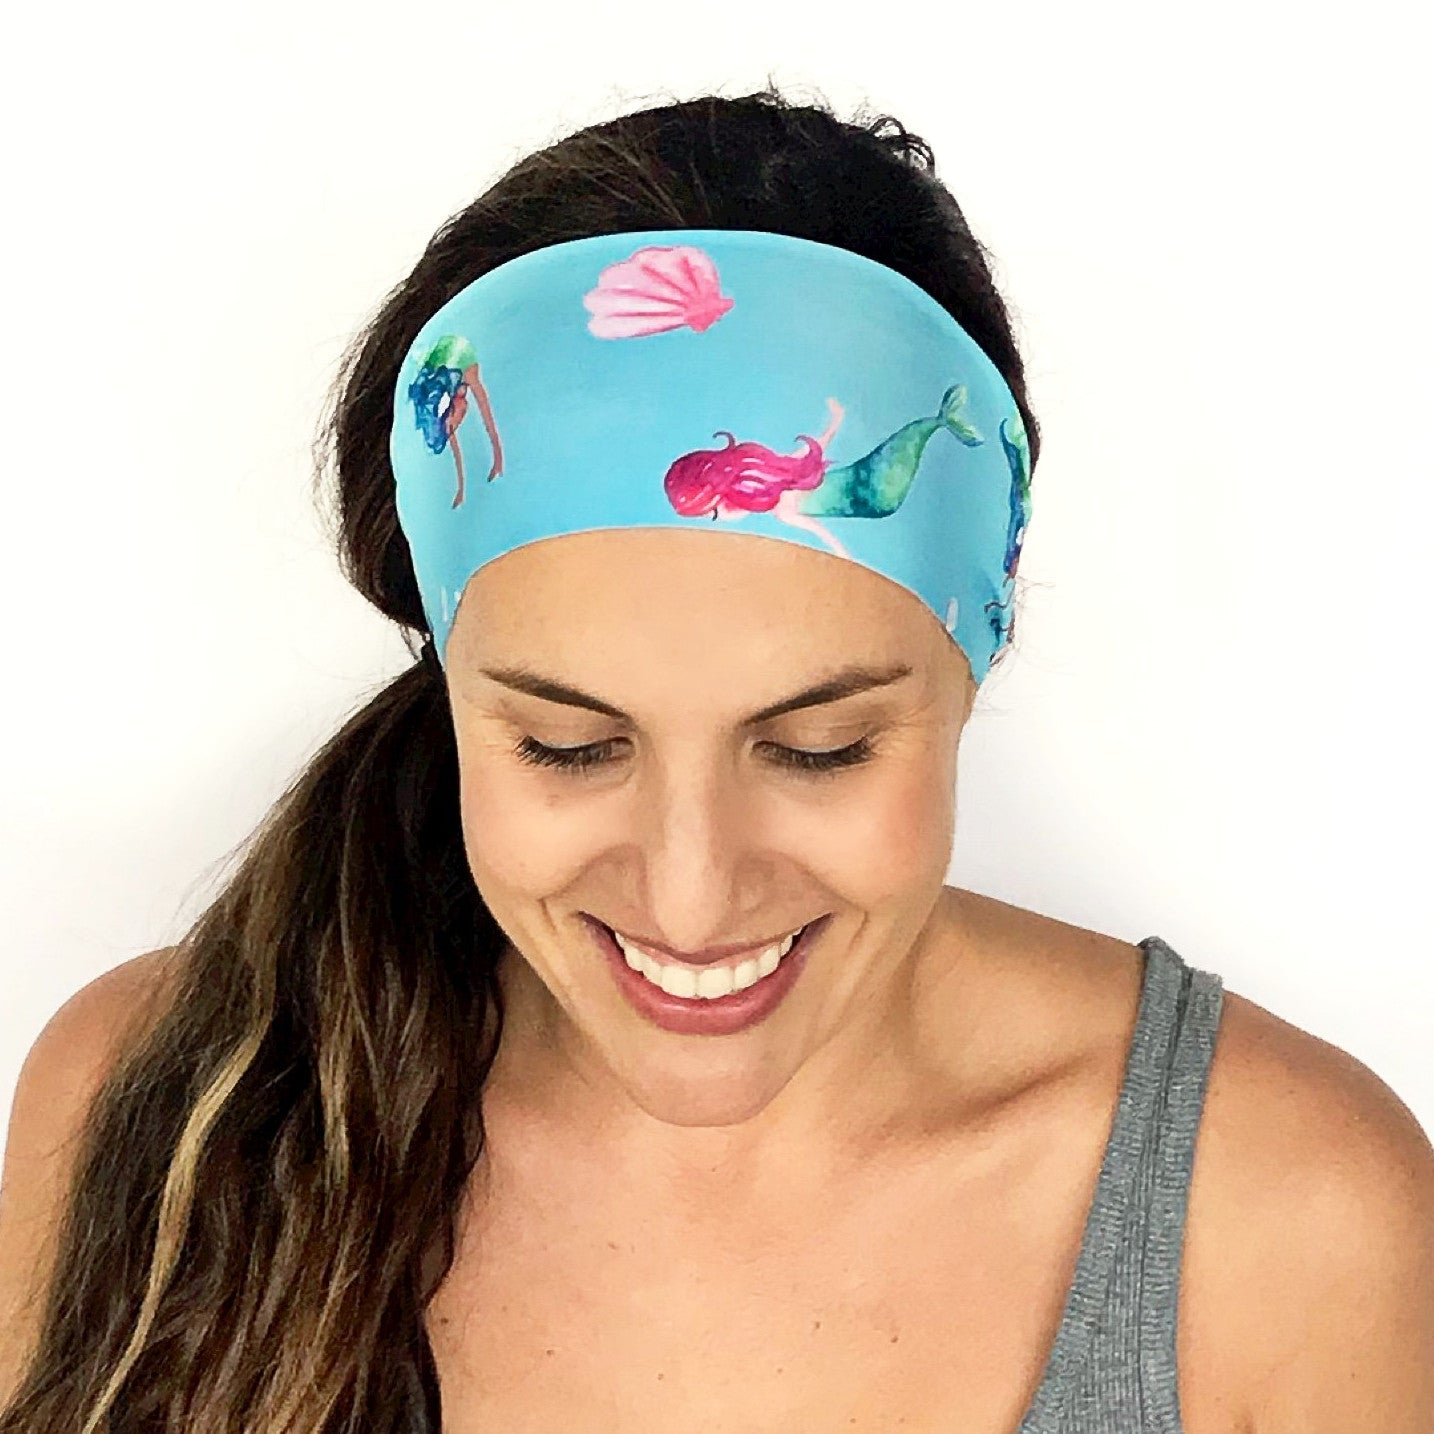 Mermaid Workout Headband